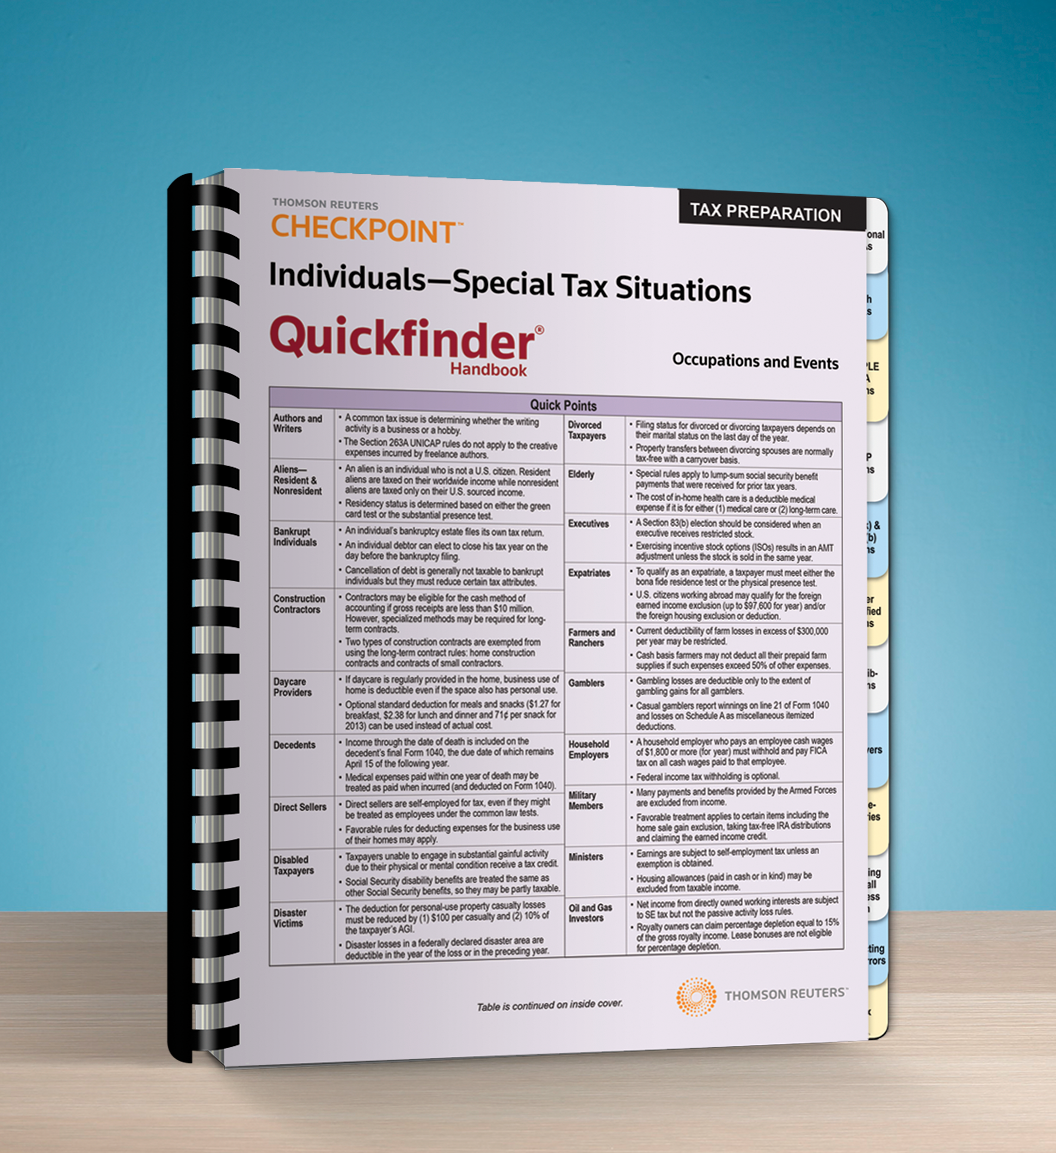 Individuals – Special Tax Situations Quickfinder Handbook (2016) - #3640